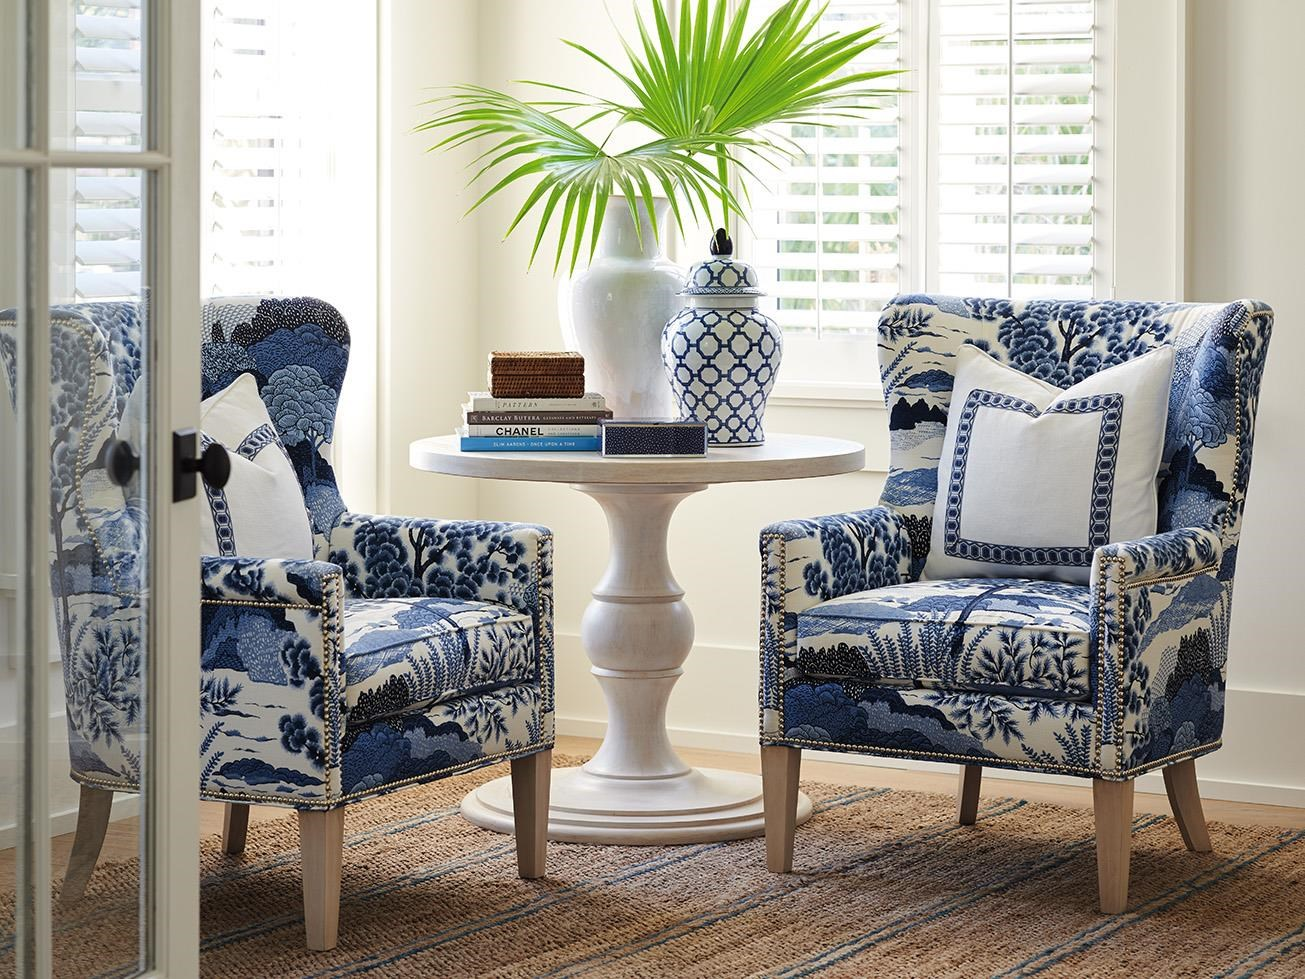 Exceptionnel Barclay Butera Upholstery (married) By Barclay Butera ...